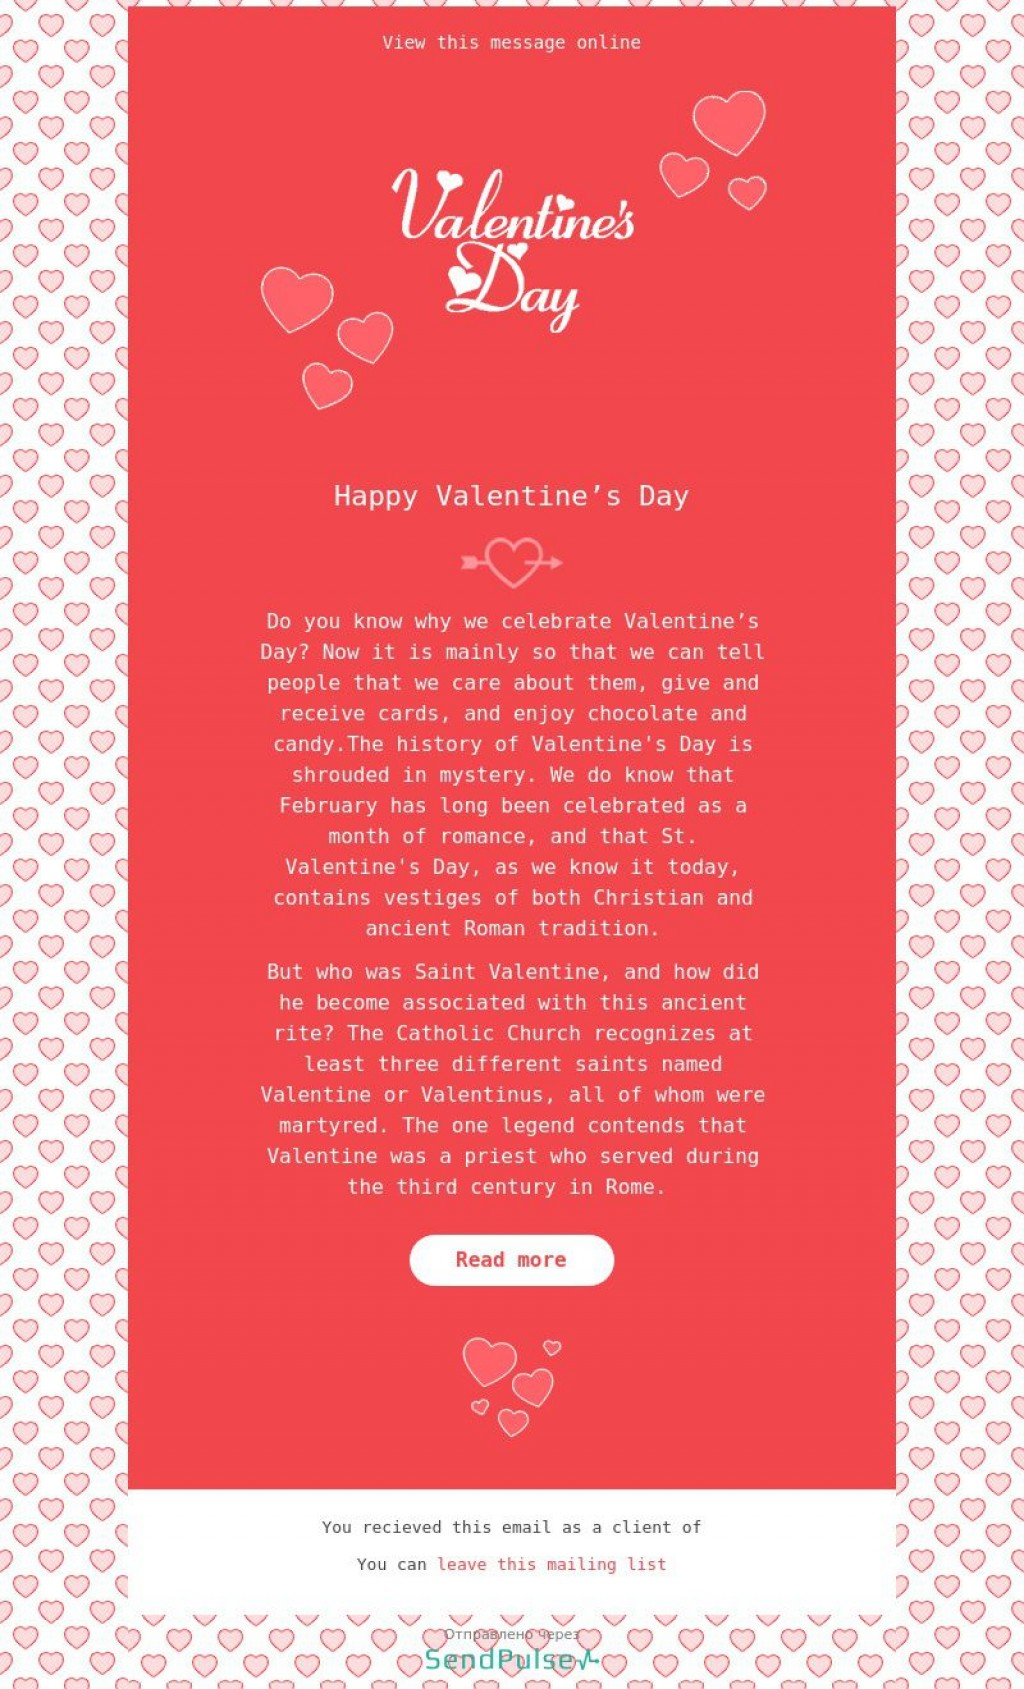 000 Unusual Holiday E Mail Template Design  Templates Mailchimp EmailLarge